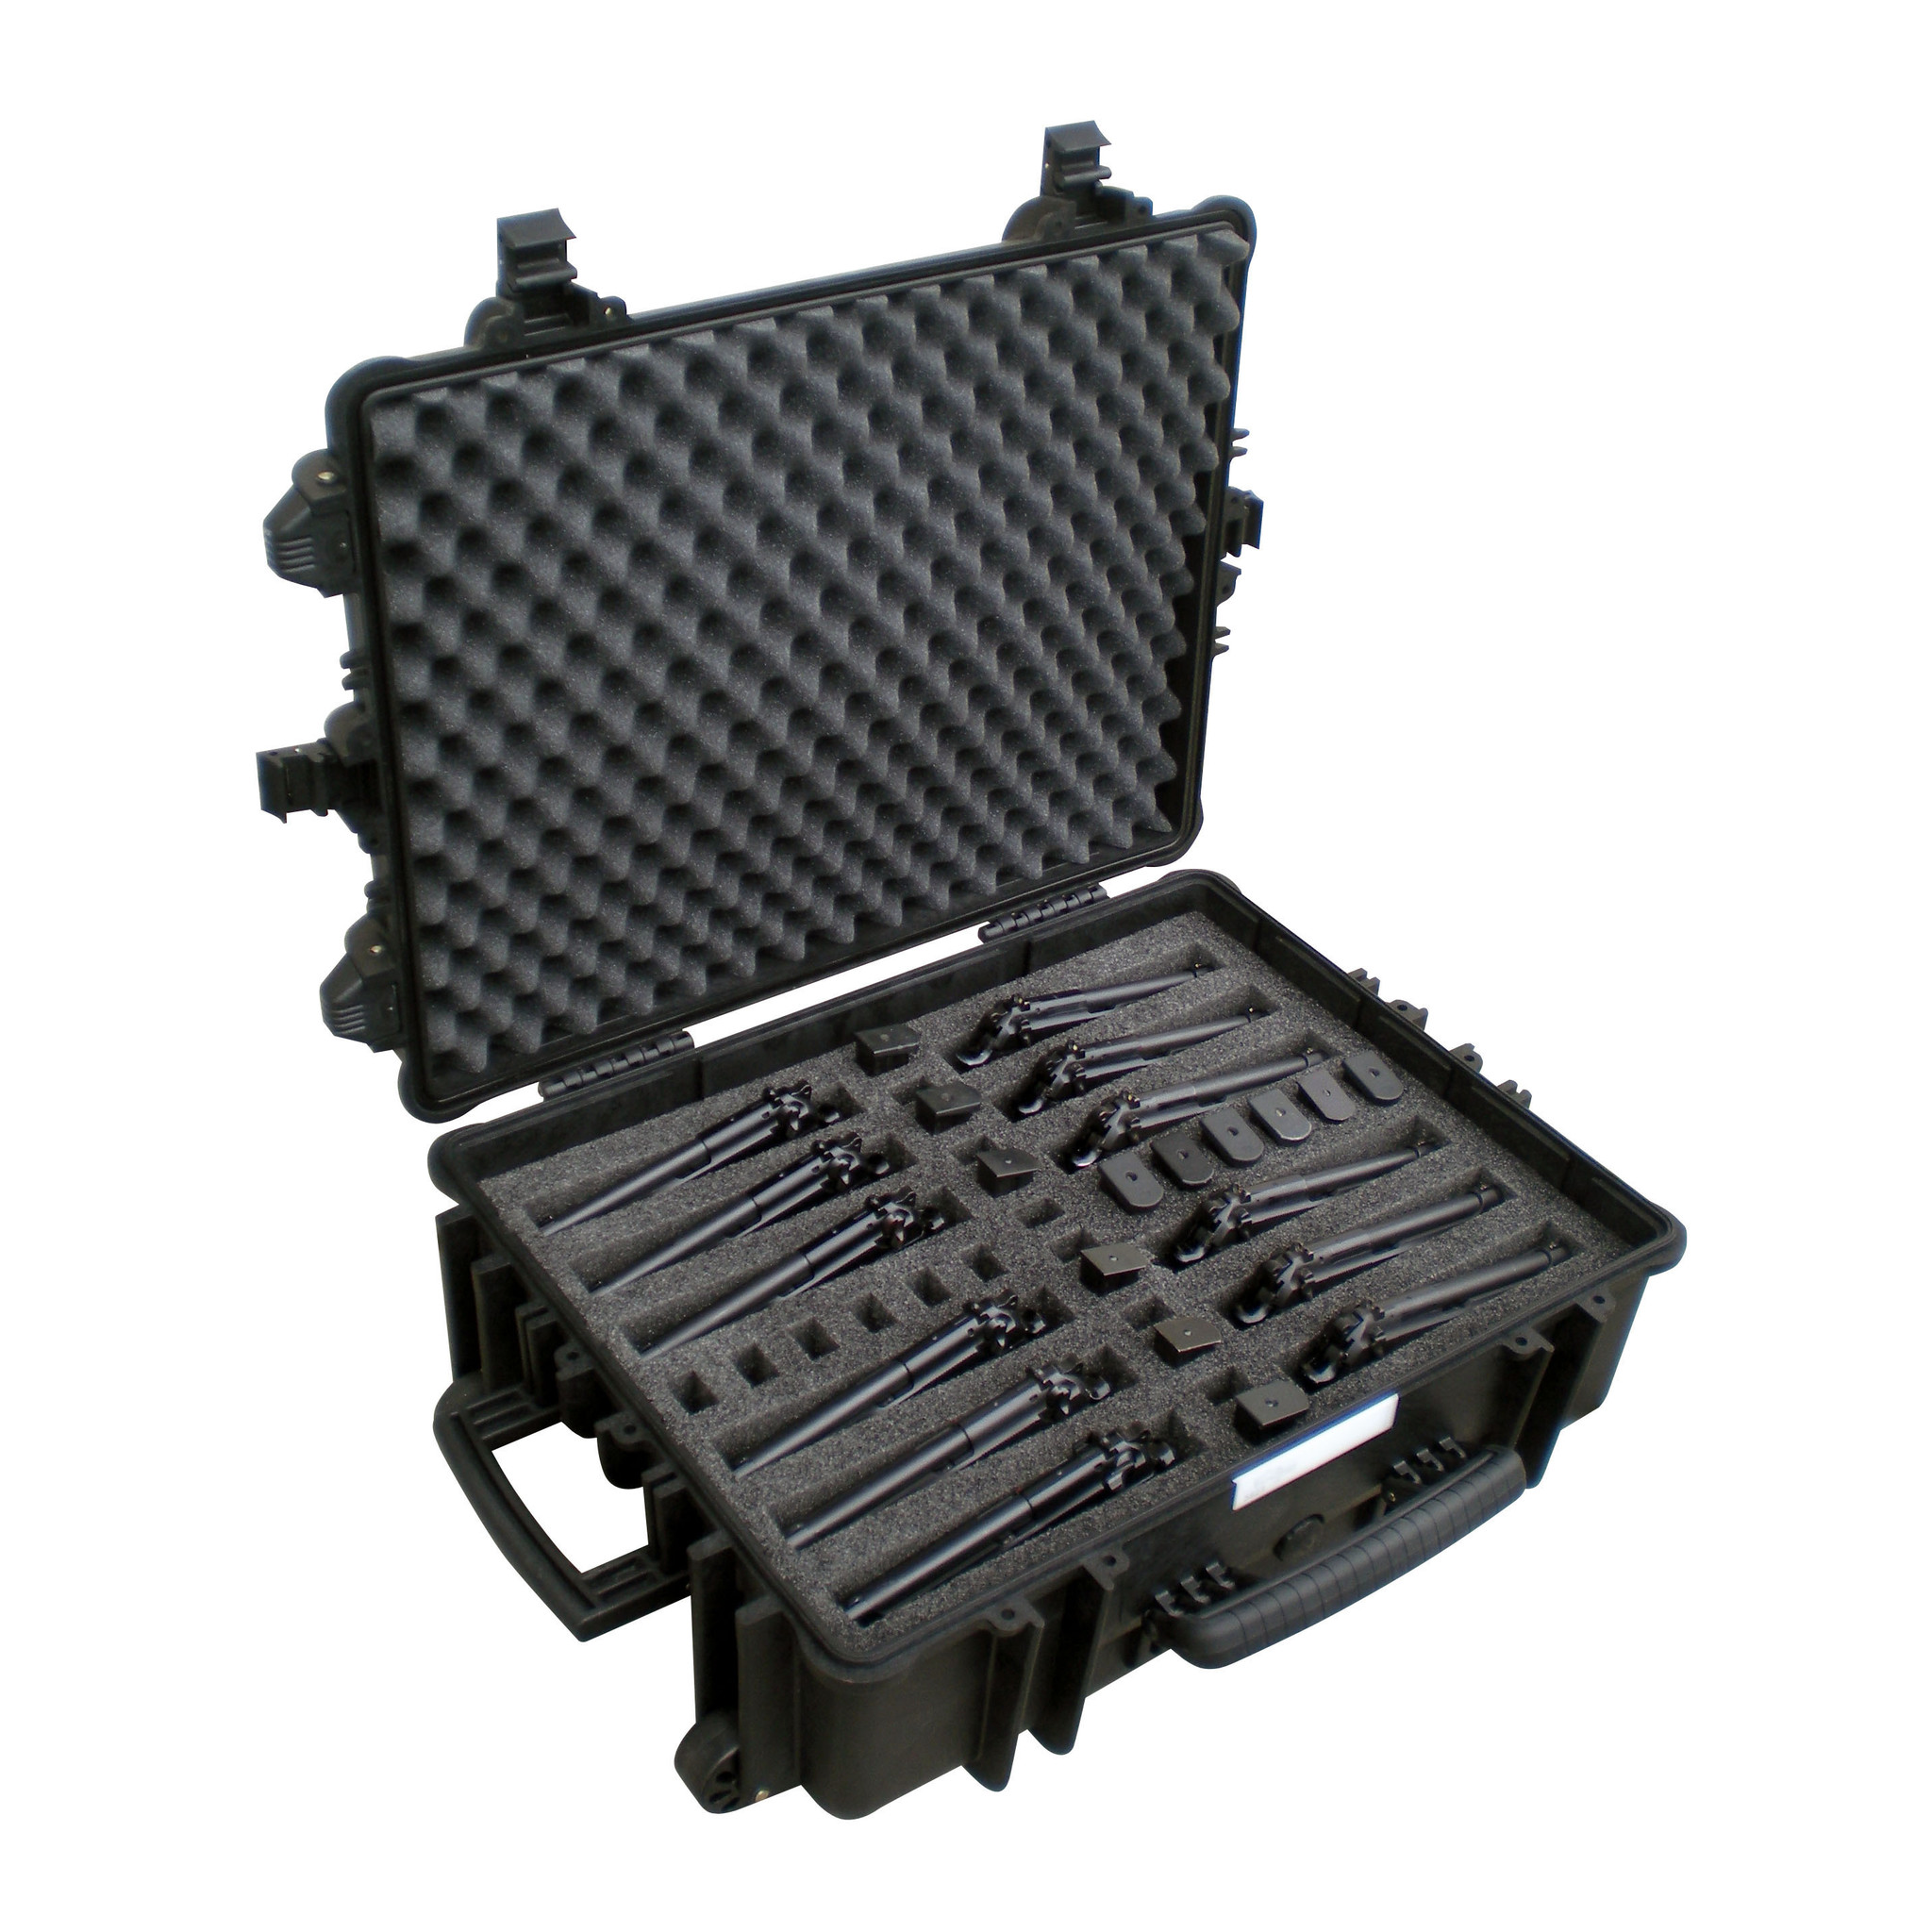 Weapon case (12 pistols)